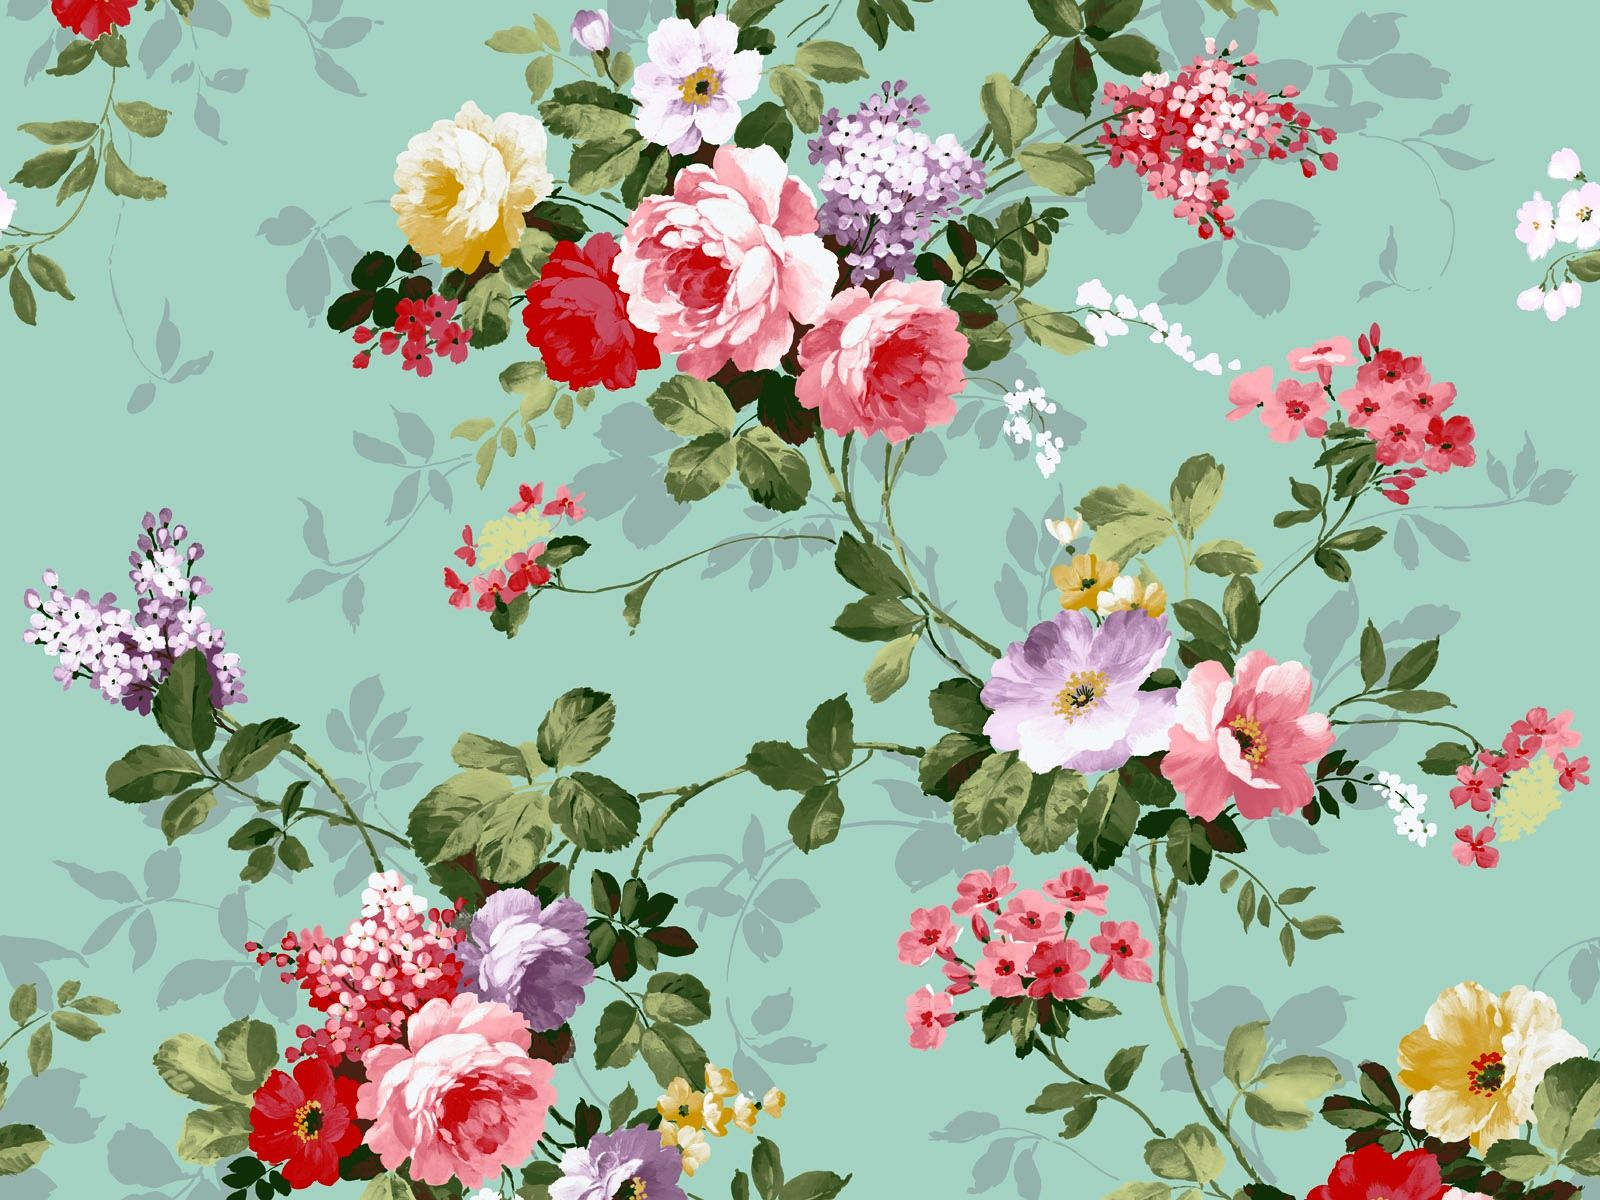 floral background tumblr wallpaper high quality